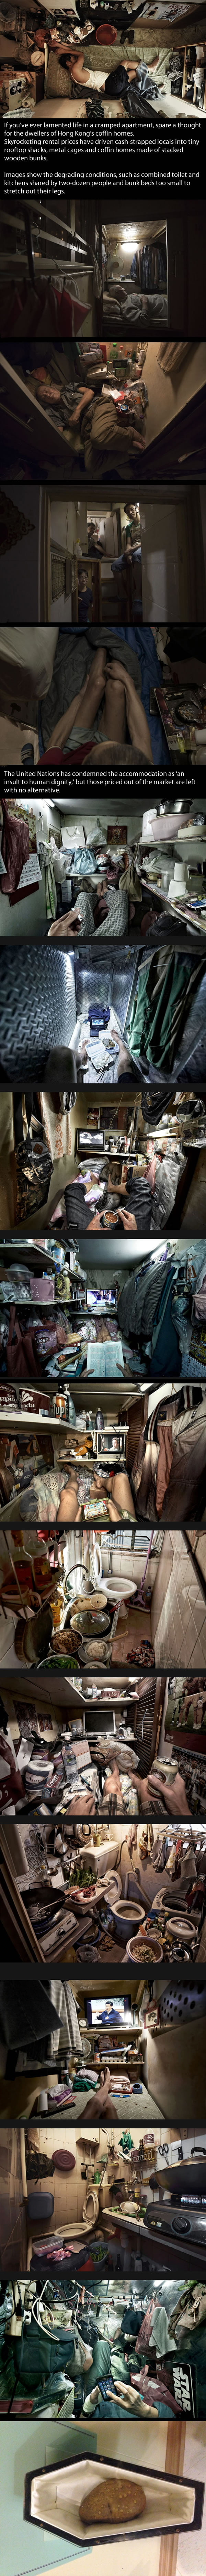 Life Inside The Suffocating Coffin Homes Of Hong Kong In Pictures